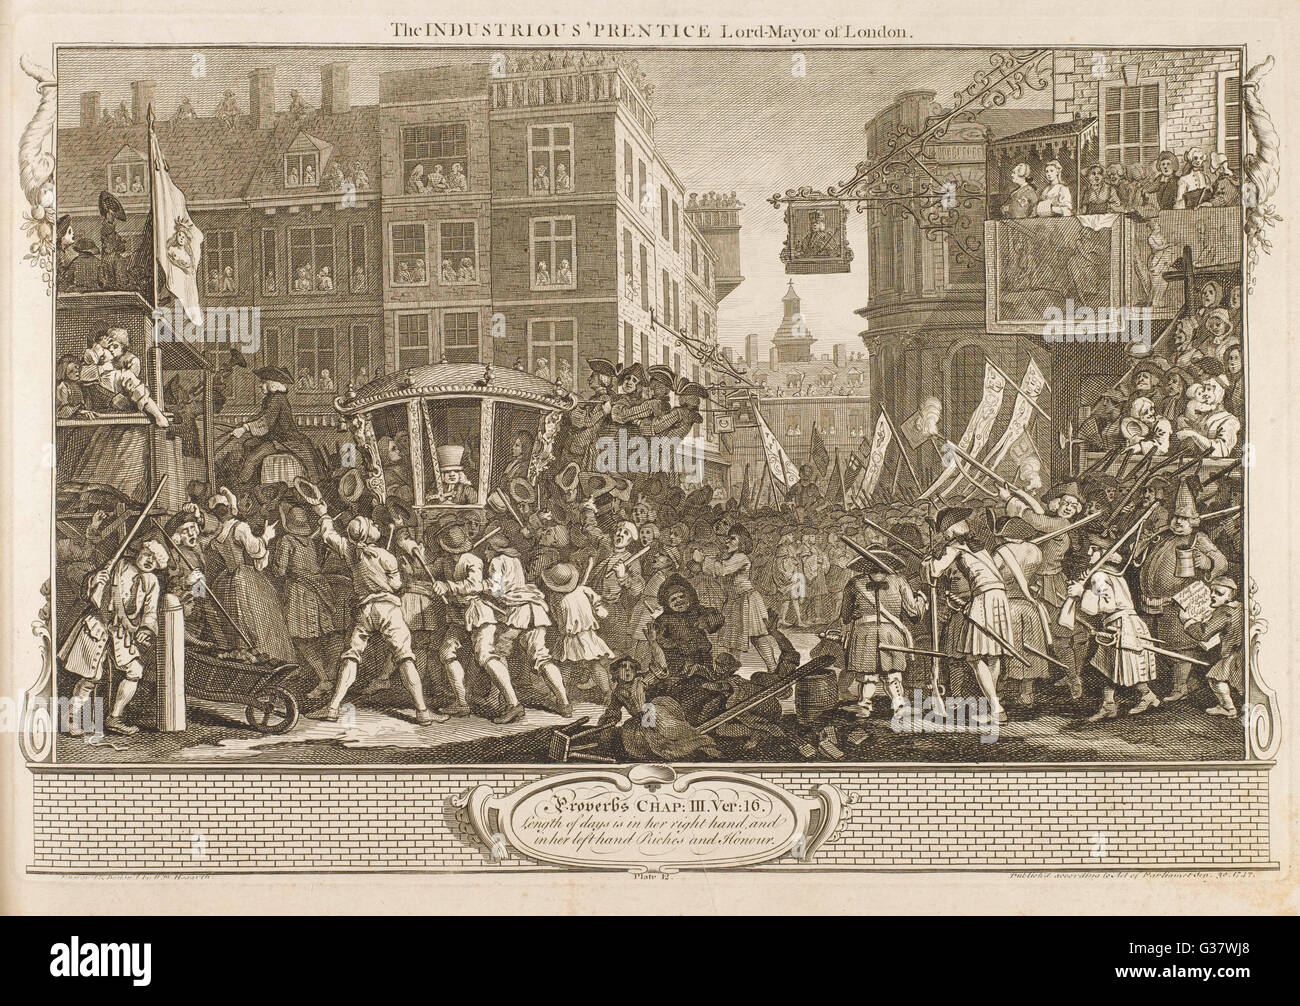 12. The industrious 'prentice  Lord Mayor of London         Date: 1747 - Stock Image